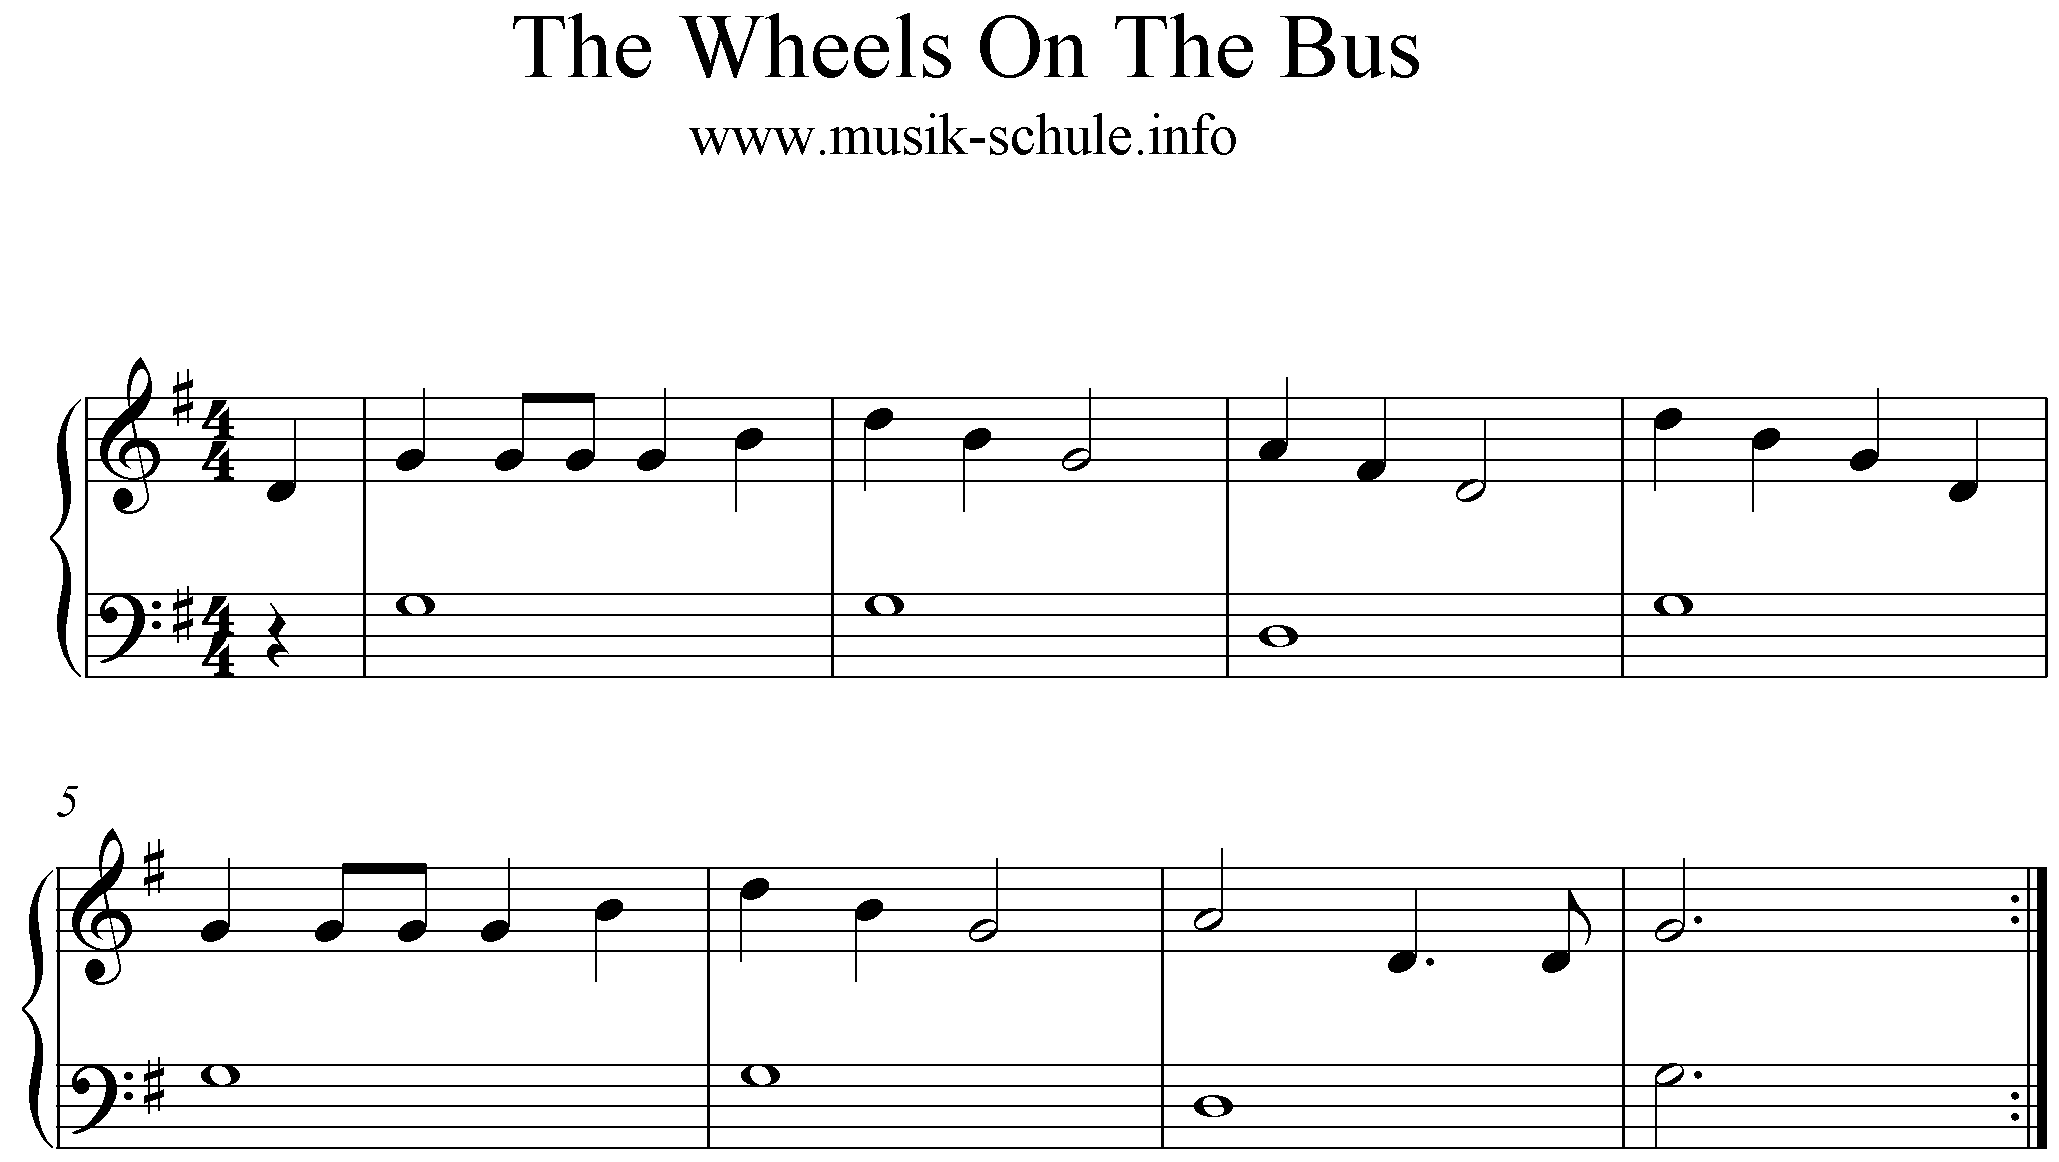 Sheetmusic The Wheels On The Bus, G-Major for Recorder